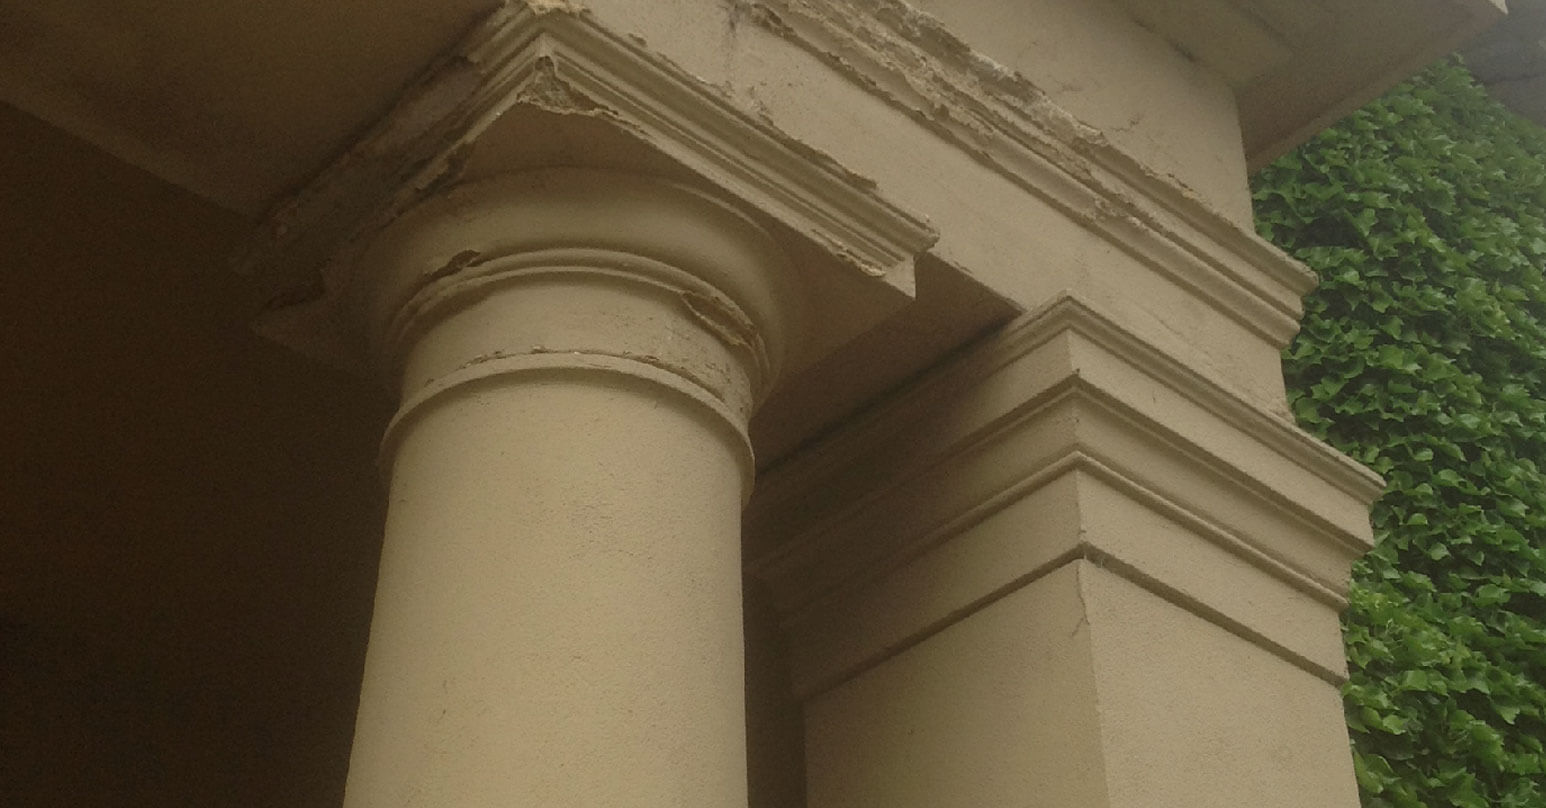 Damage and chips to stone pillars